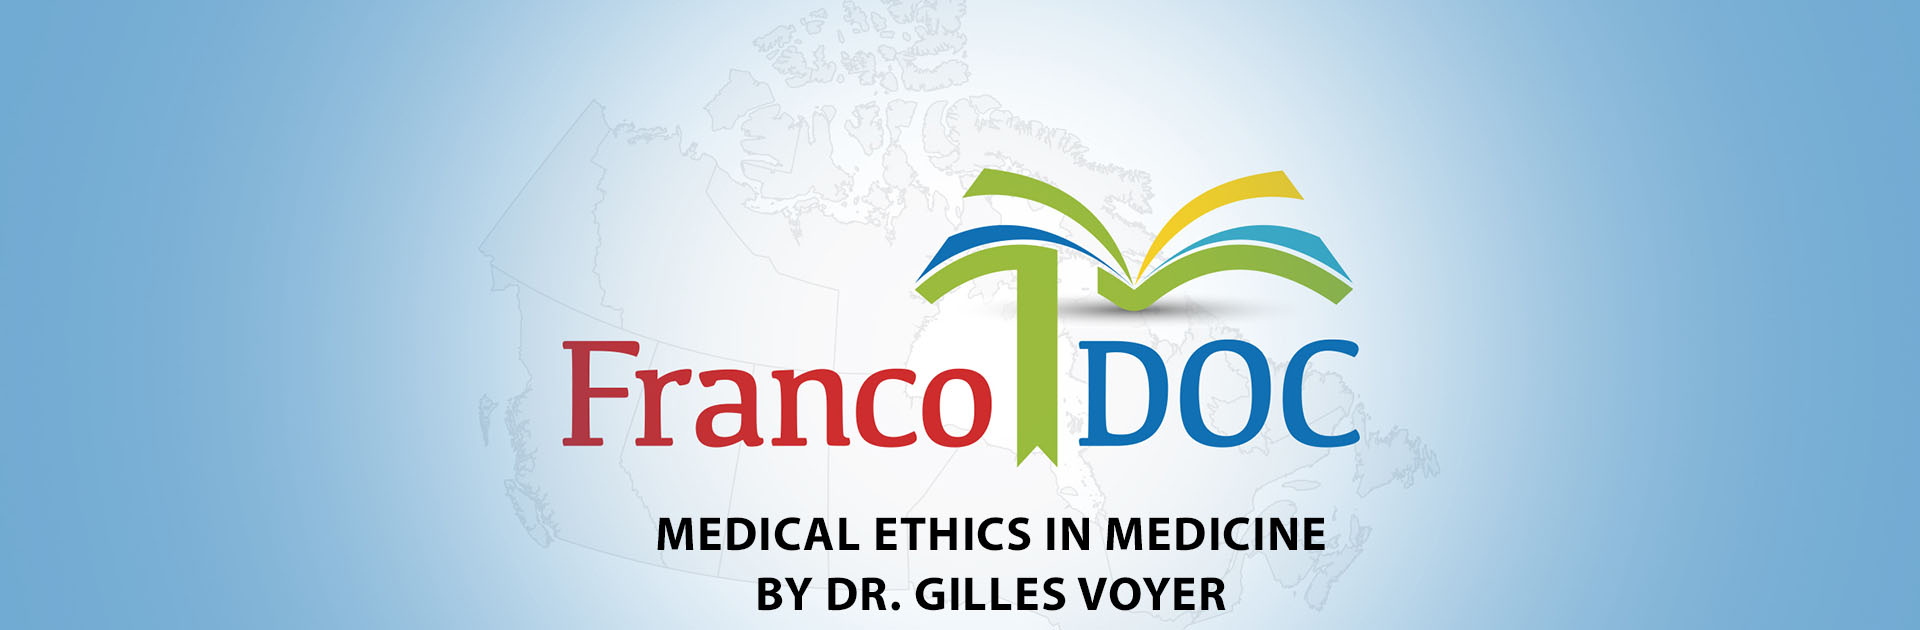 Medical ethics in medicine